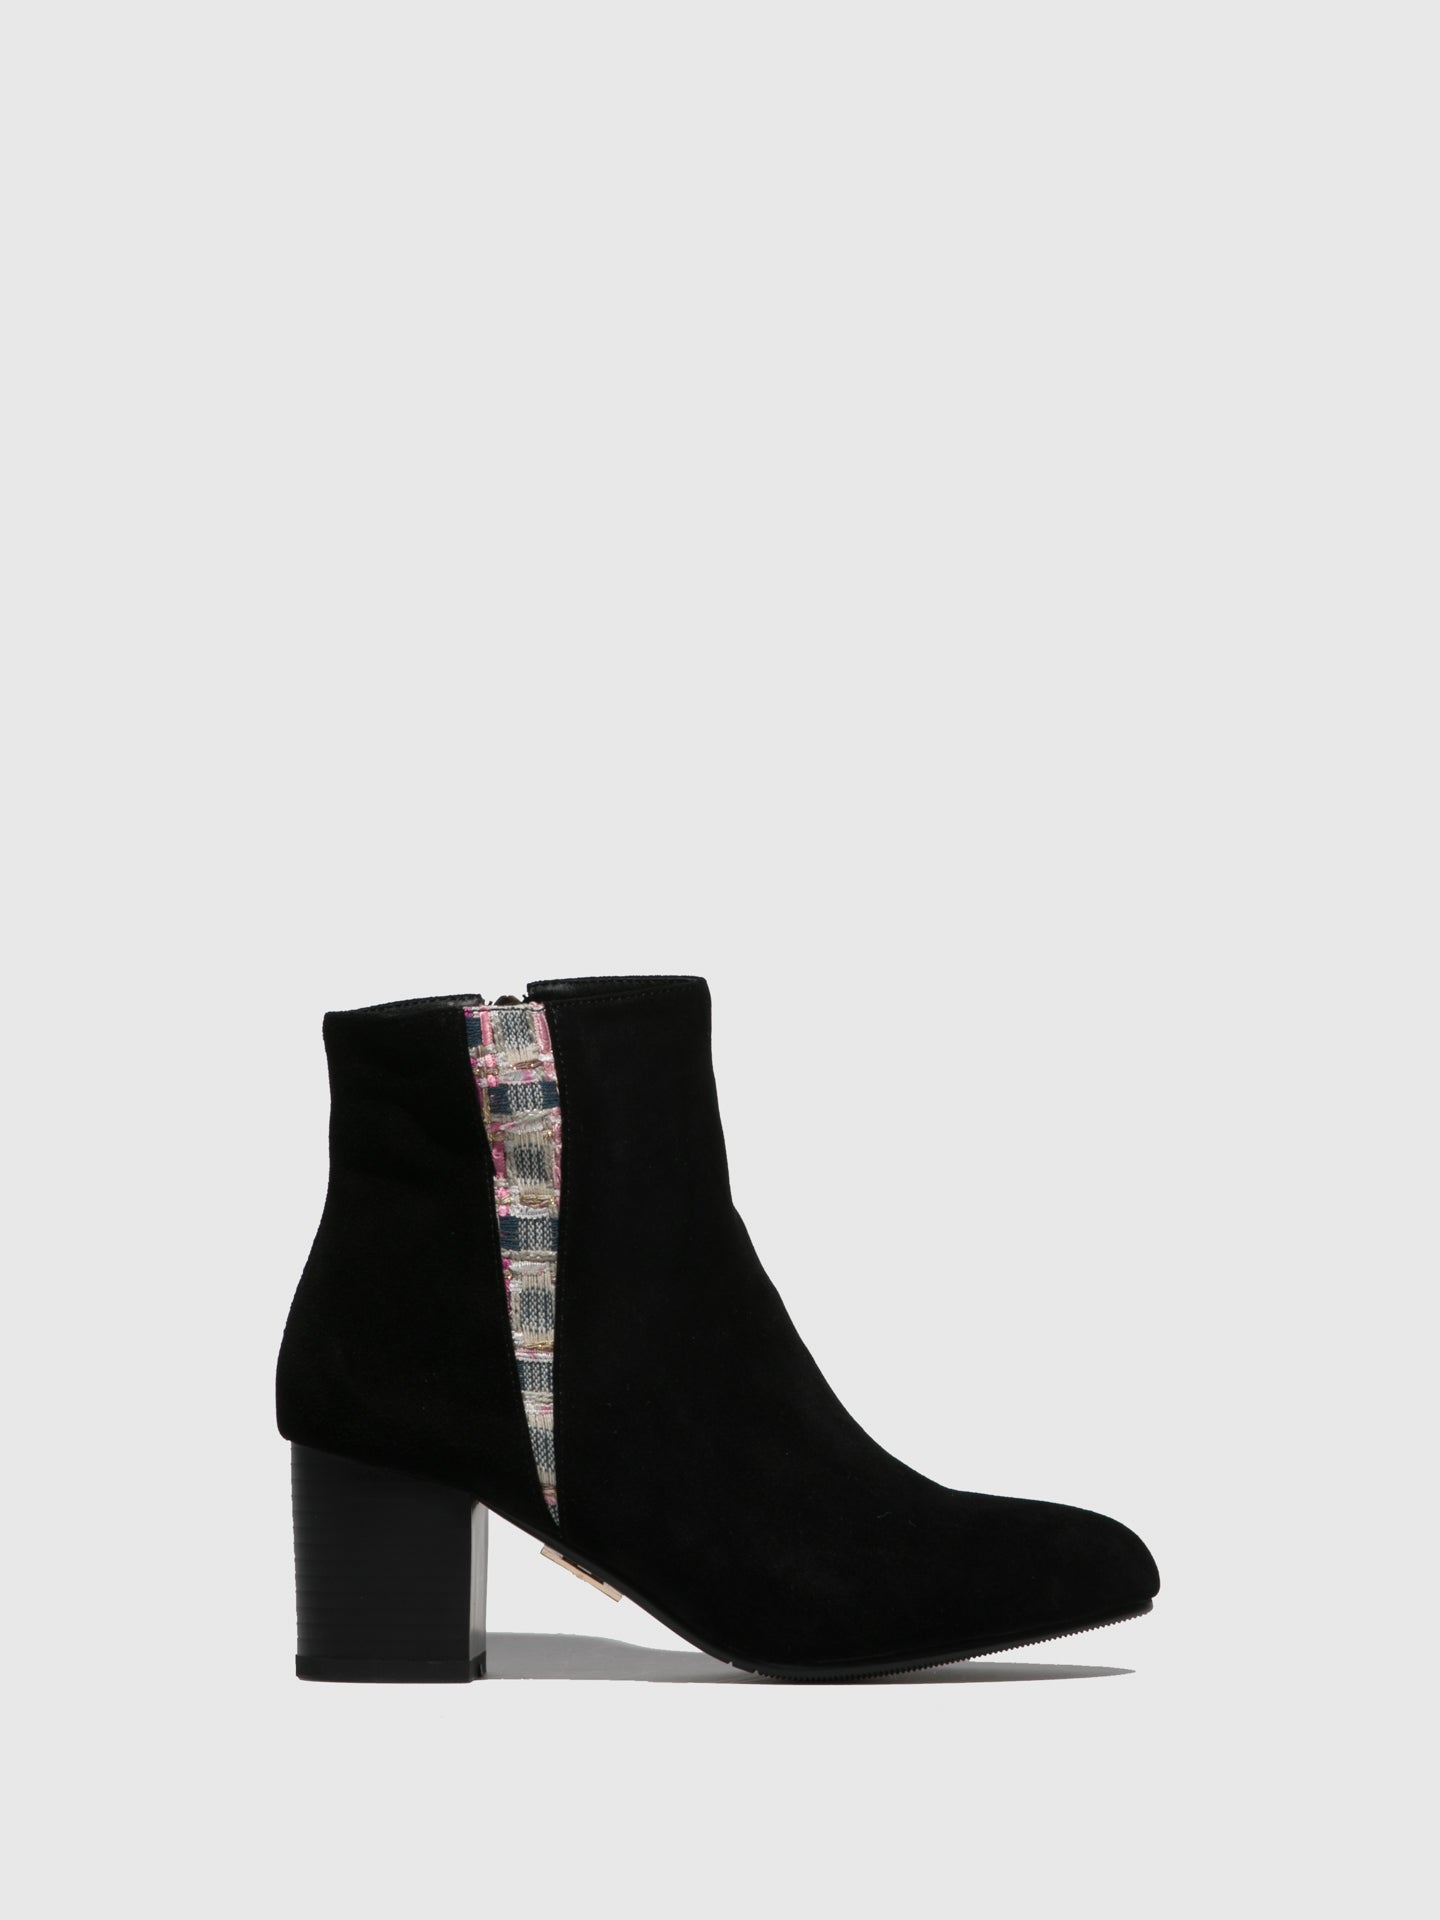 Yull Black Round Toe Ankle Boots